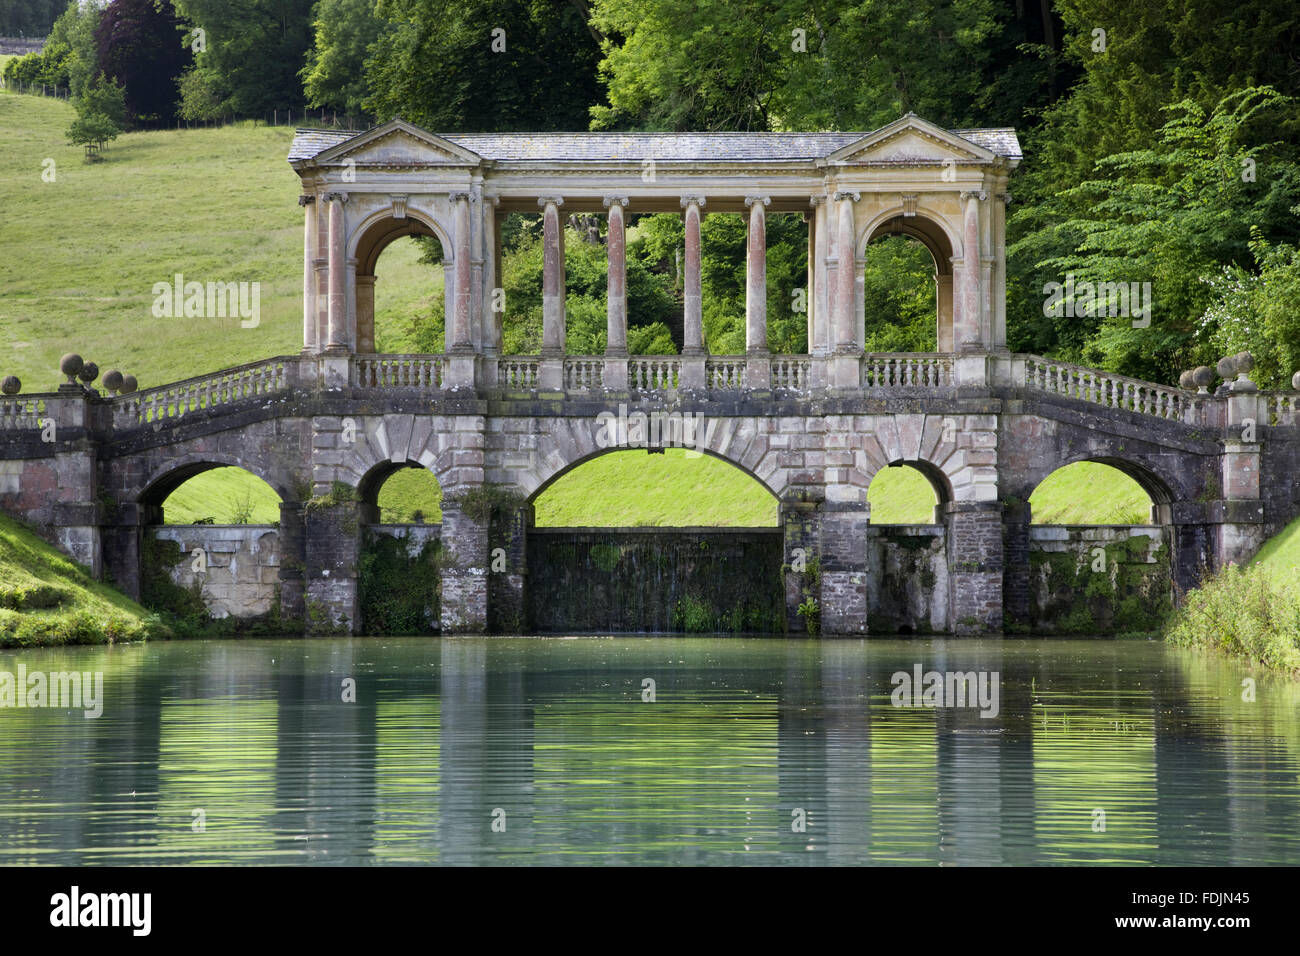 Prior Park Landscape Garden The palladian bridge at prior park landscape garden bath the the palladian bridge at prior park landscape garden bath the bridge was built in 1755 by richard jones and was the third such structure to be built in workwithnaturefo